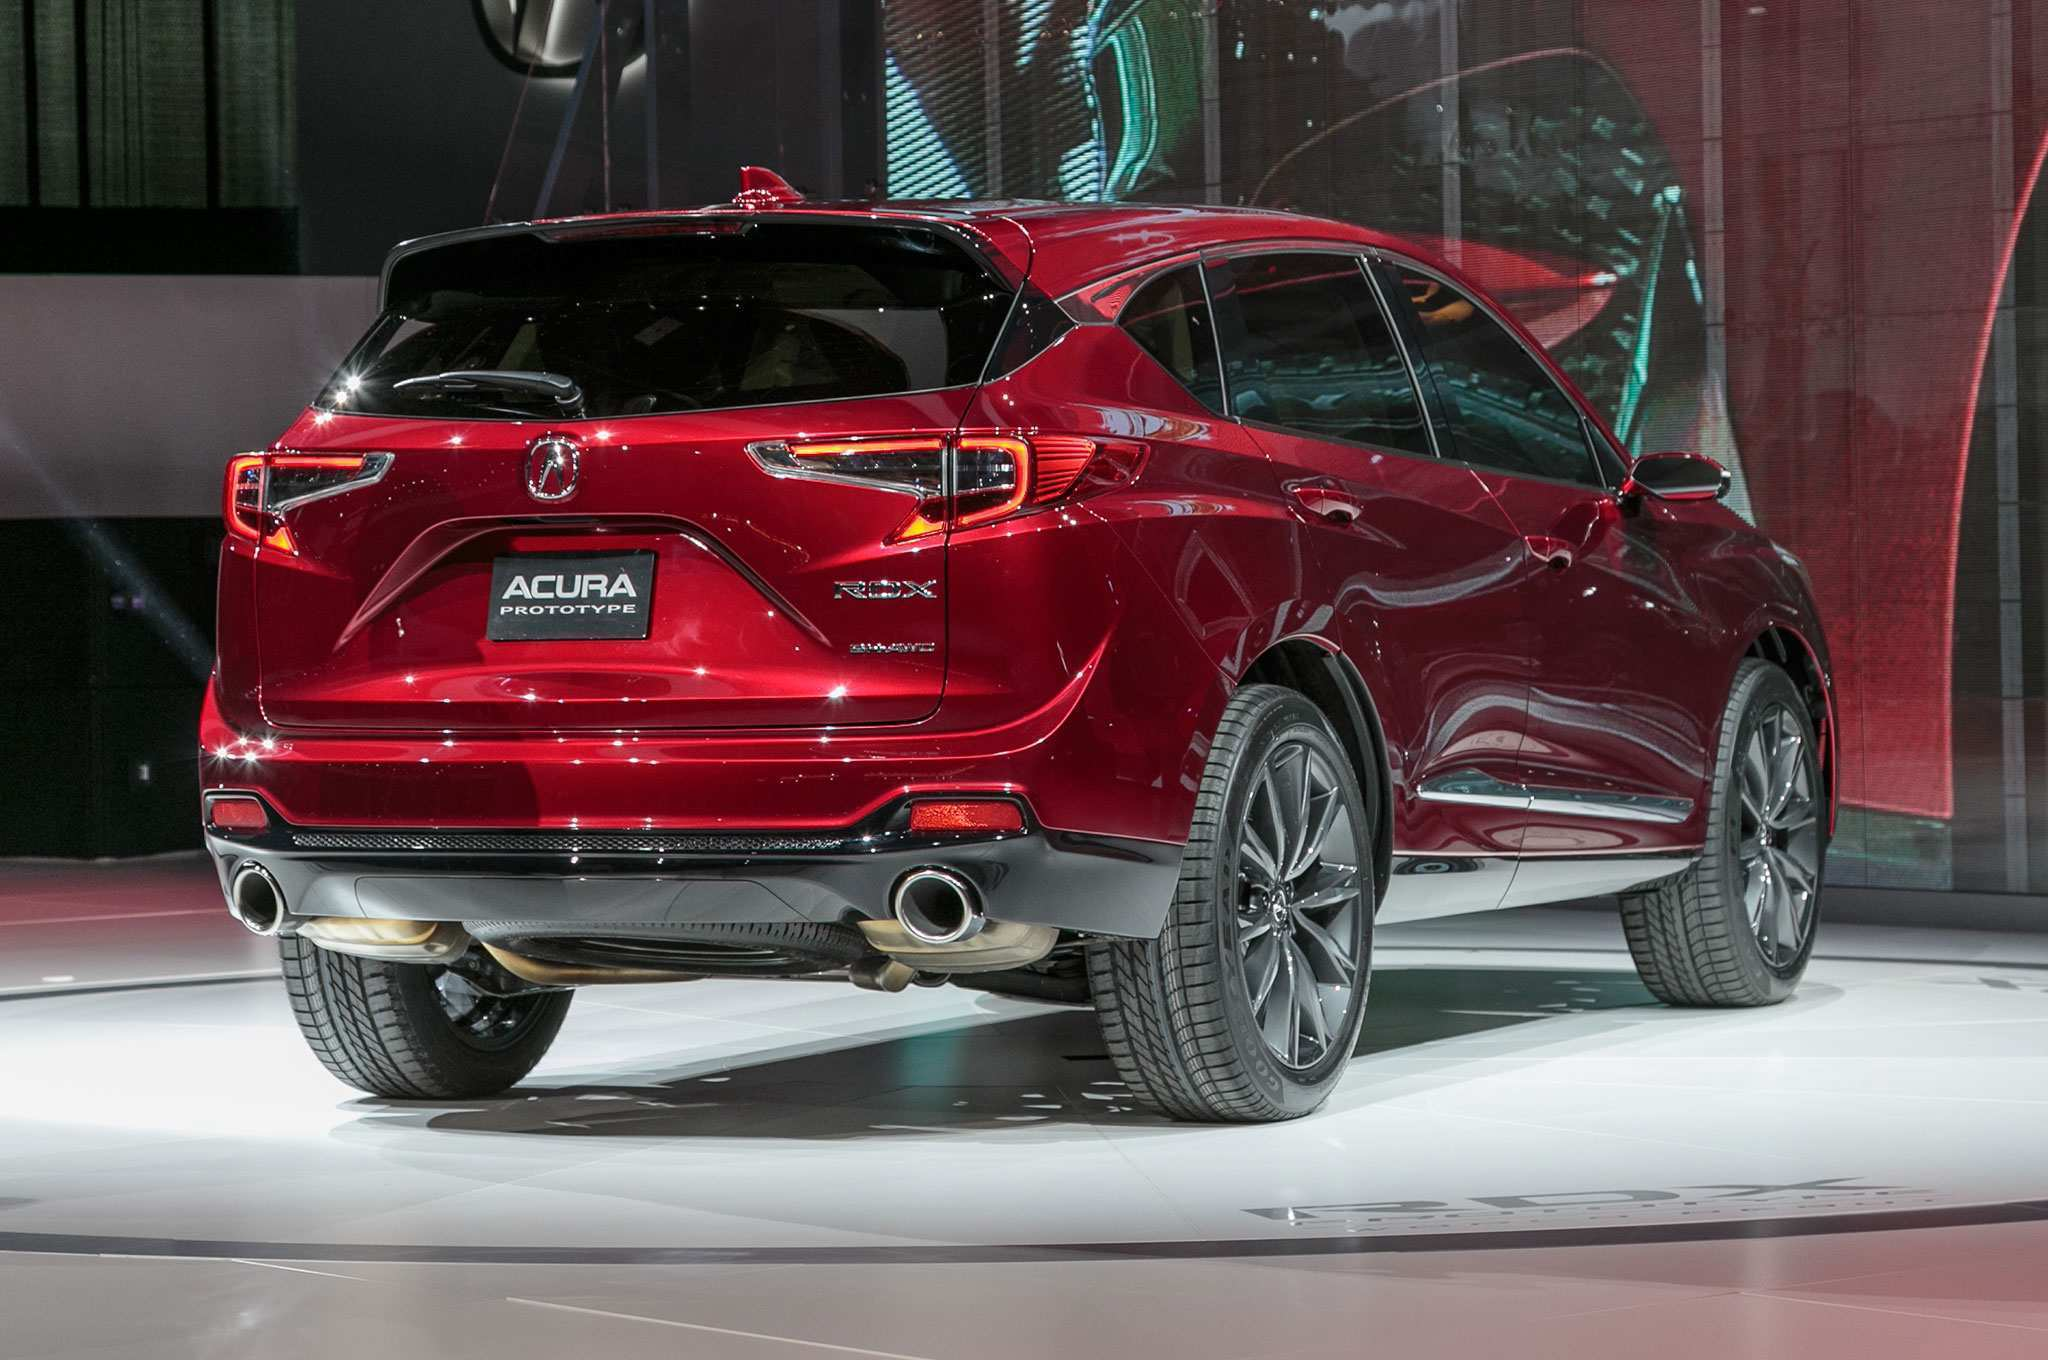 14 All New 2019 Acura Rdx Prototype Spesification by 2019 Acura Rdx Prototype